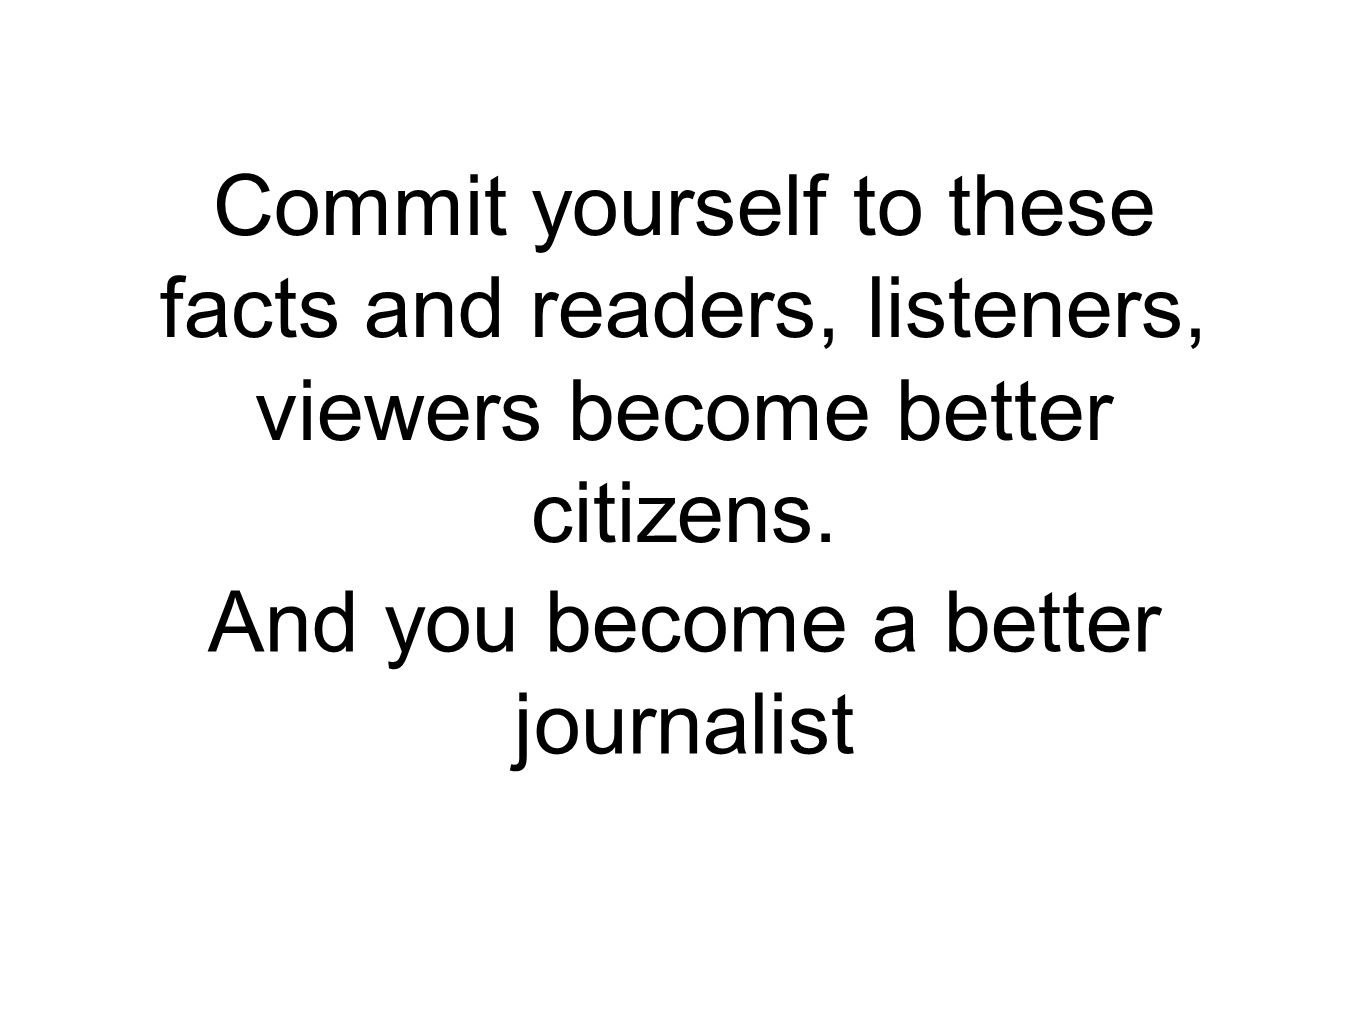 Commit yourself to these facts and readers, listeners, viewers become better citizens.